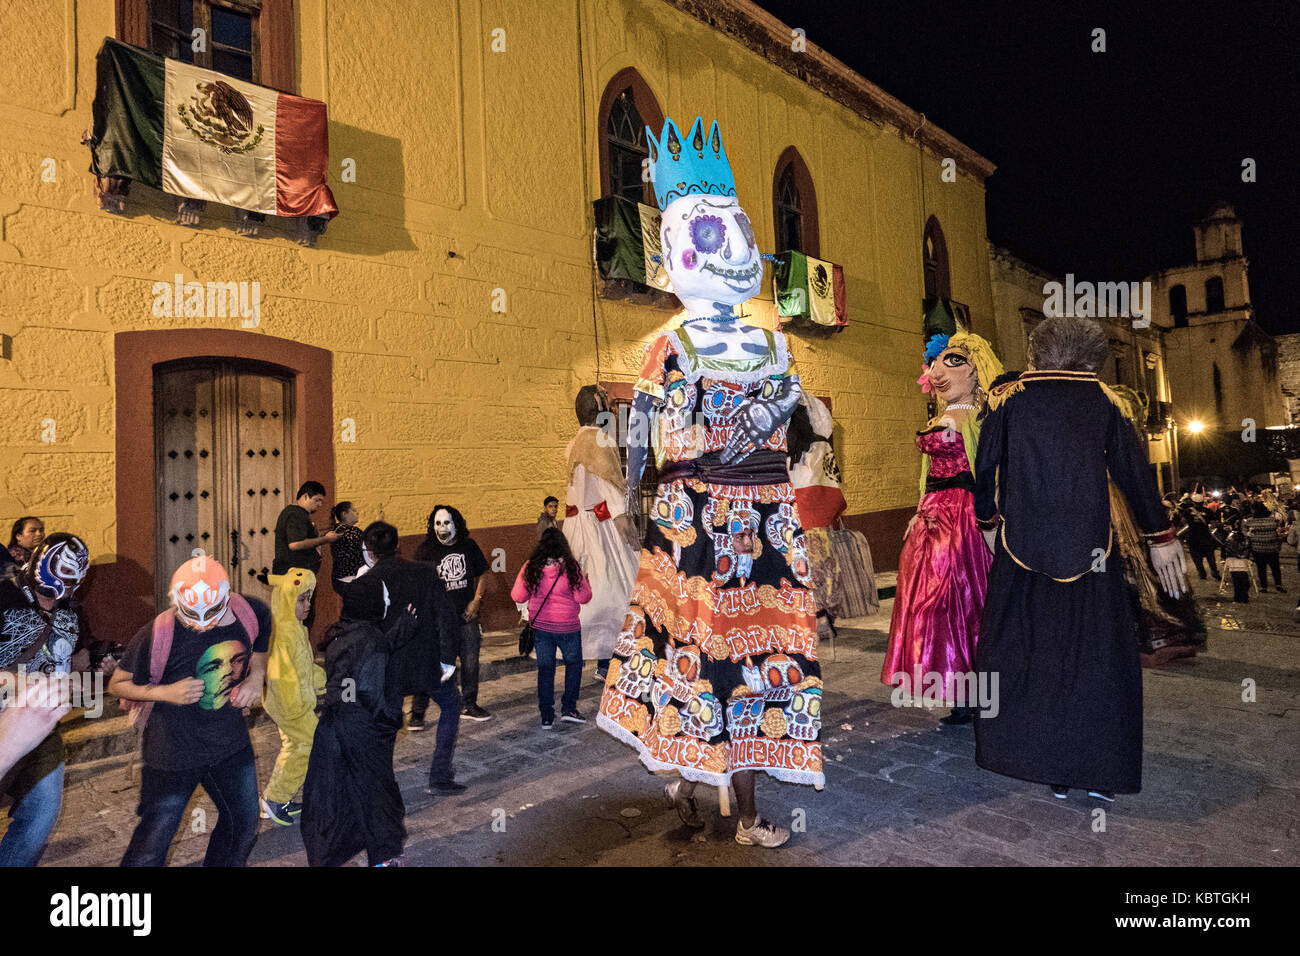 Giant paper-mache puppets called mojigangas lead a procession through the historic district during the week long - Stock Image